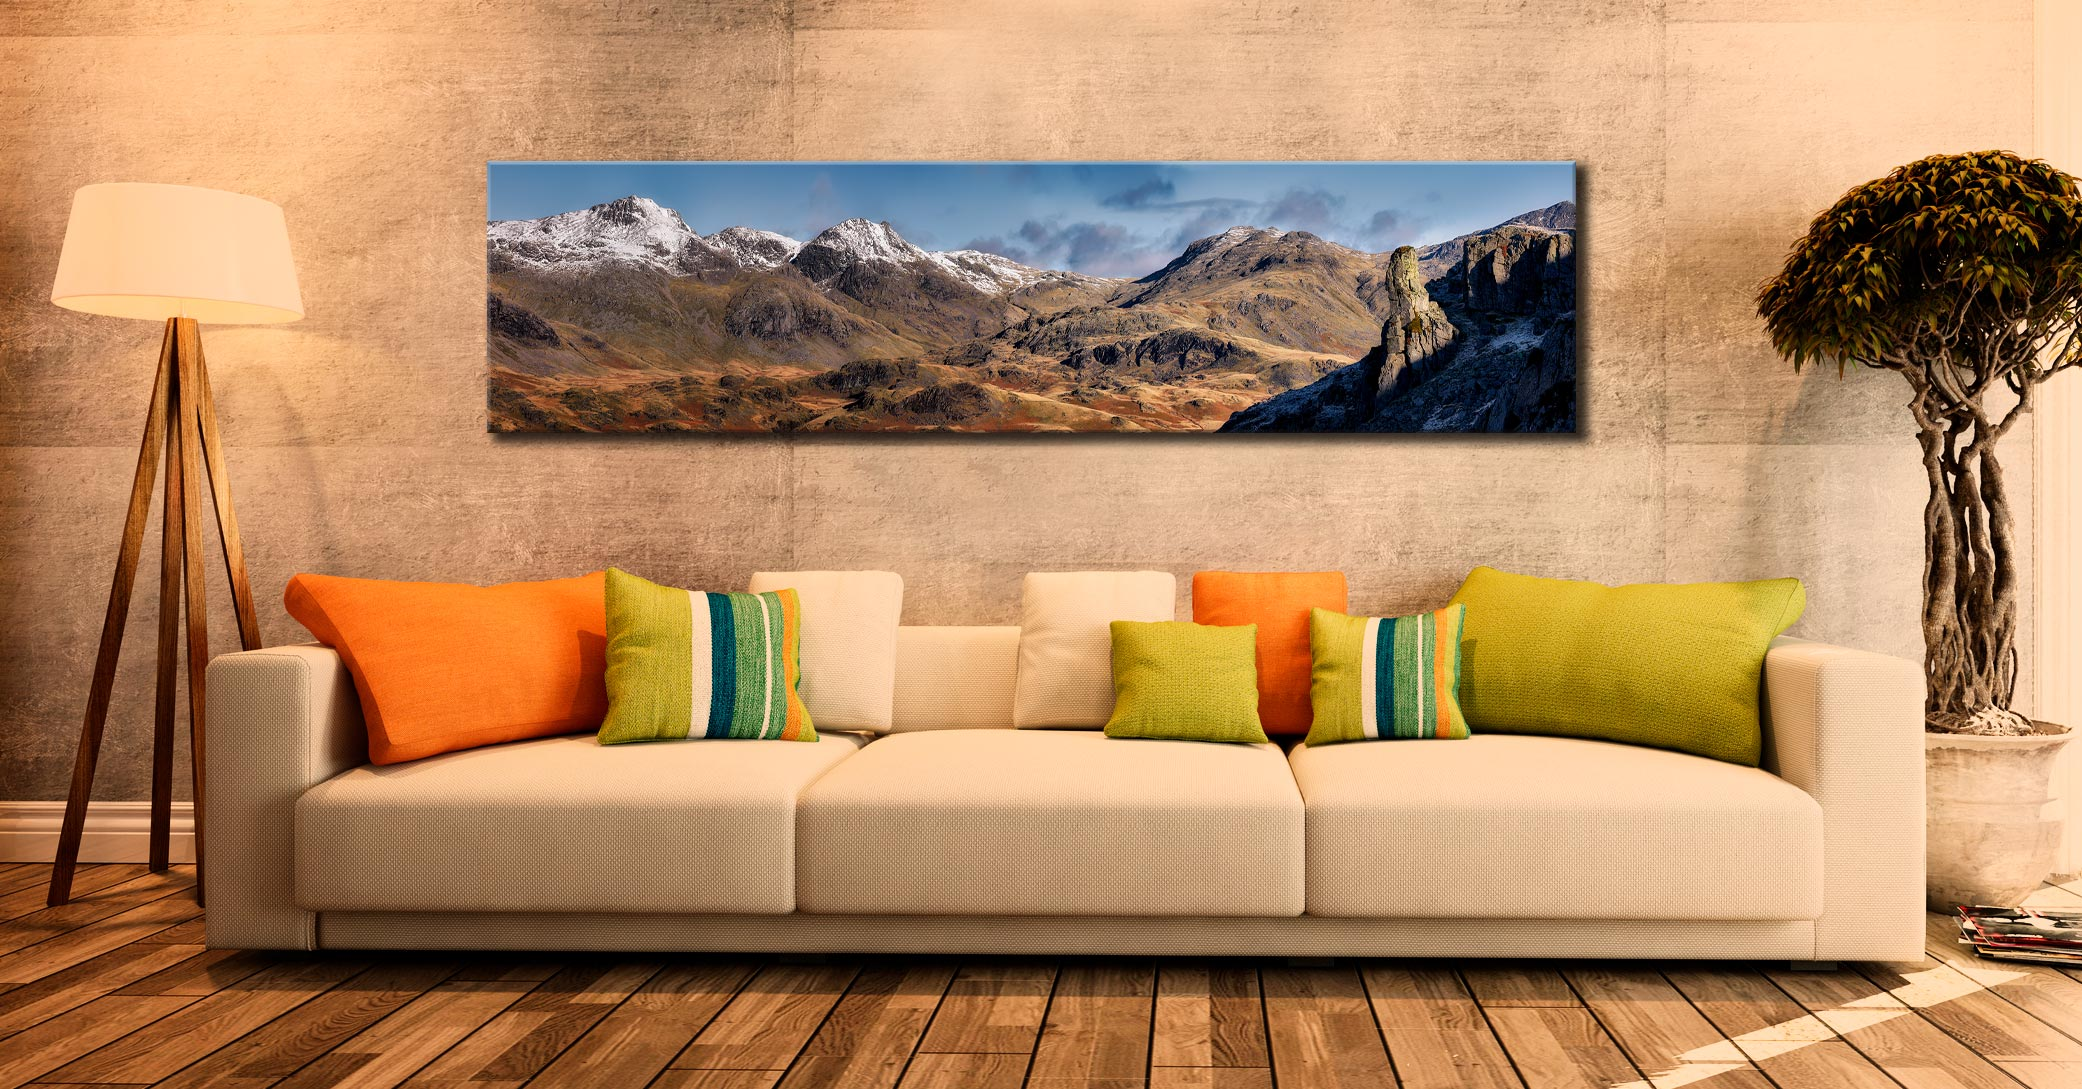 Eskdale Needle and Scafell Panorama - Lake District Canvas on Wall